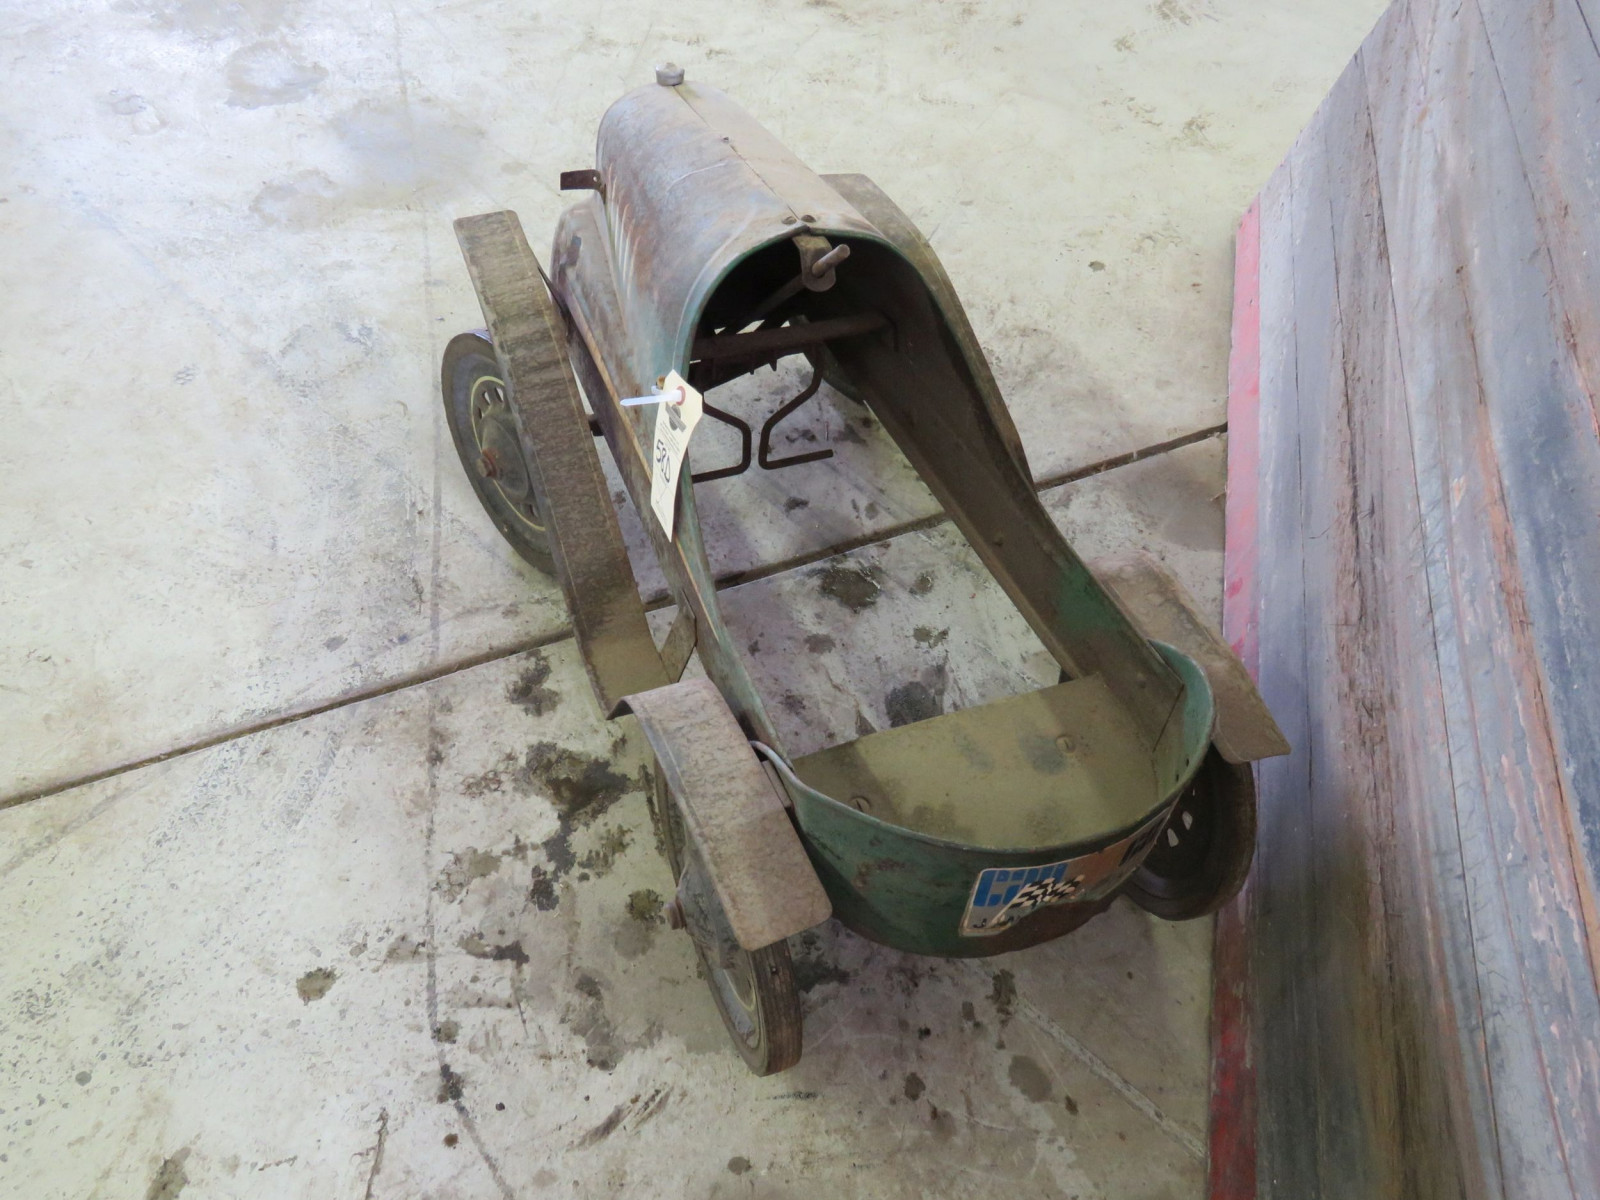 Garton Hot Rod Pedal Car for Restore - Image 3